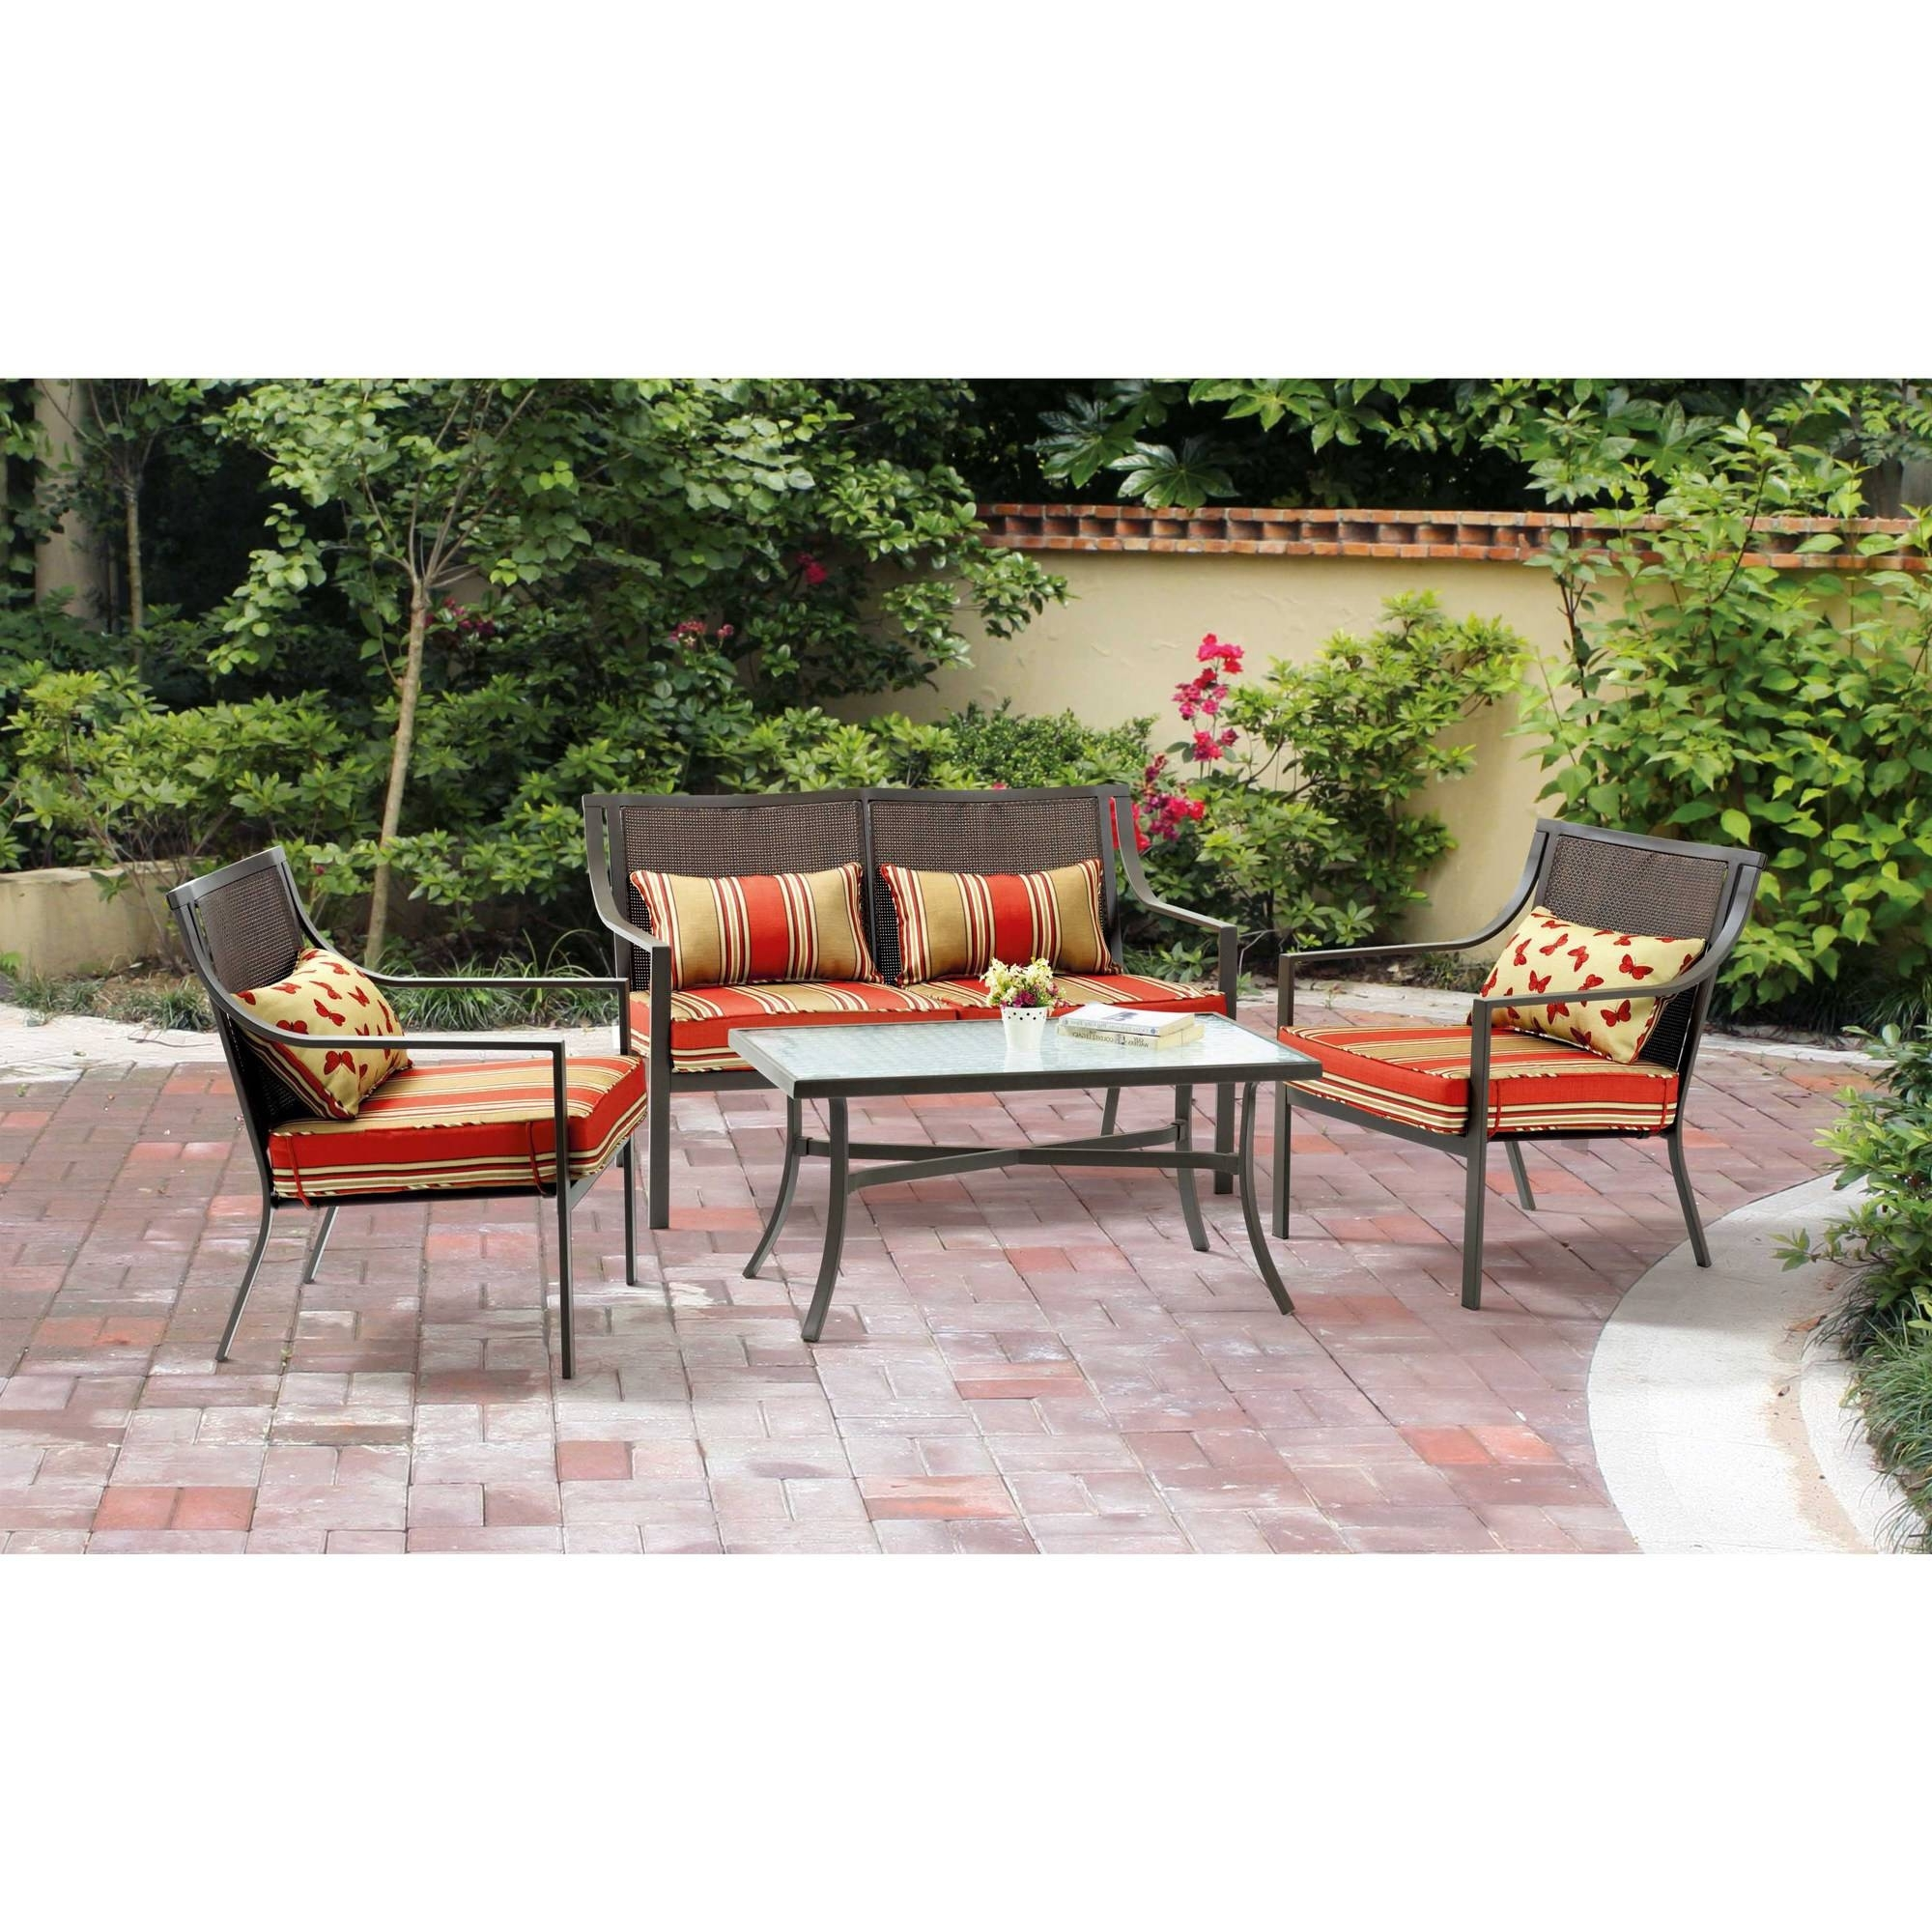 Preferred Patio Conversation Sets At Walmart Throughout Mainstays Alexandra Square 4 Piece Patio Conversation Set, Seats  (View 19 of 20)